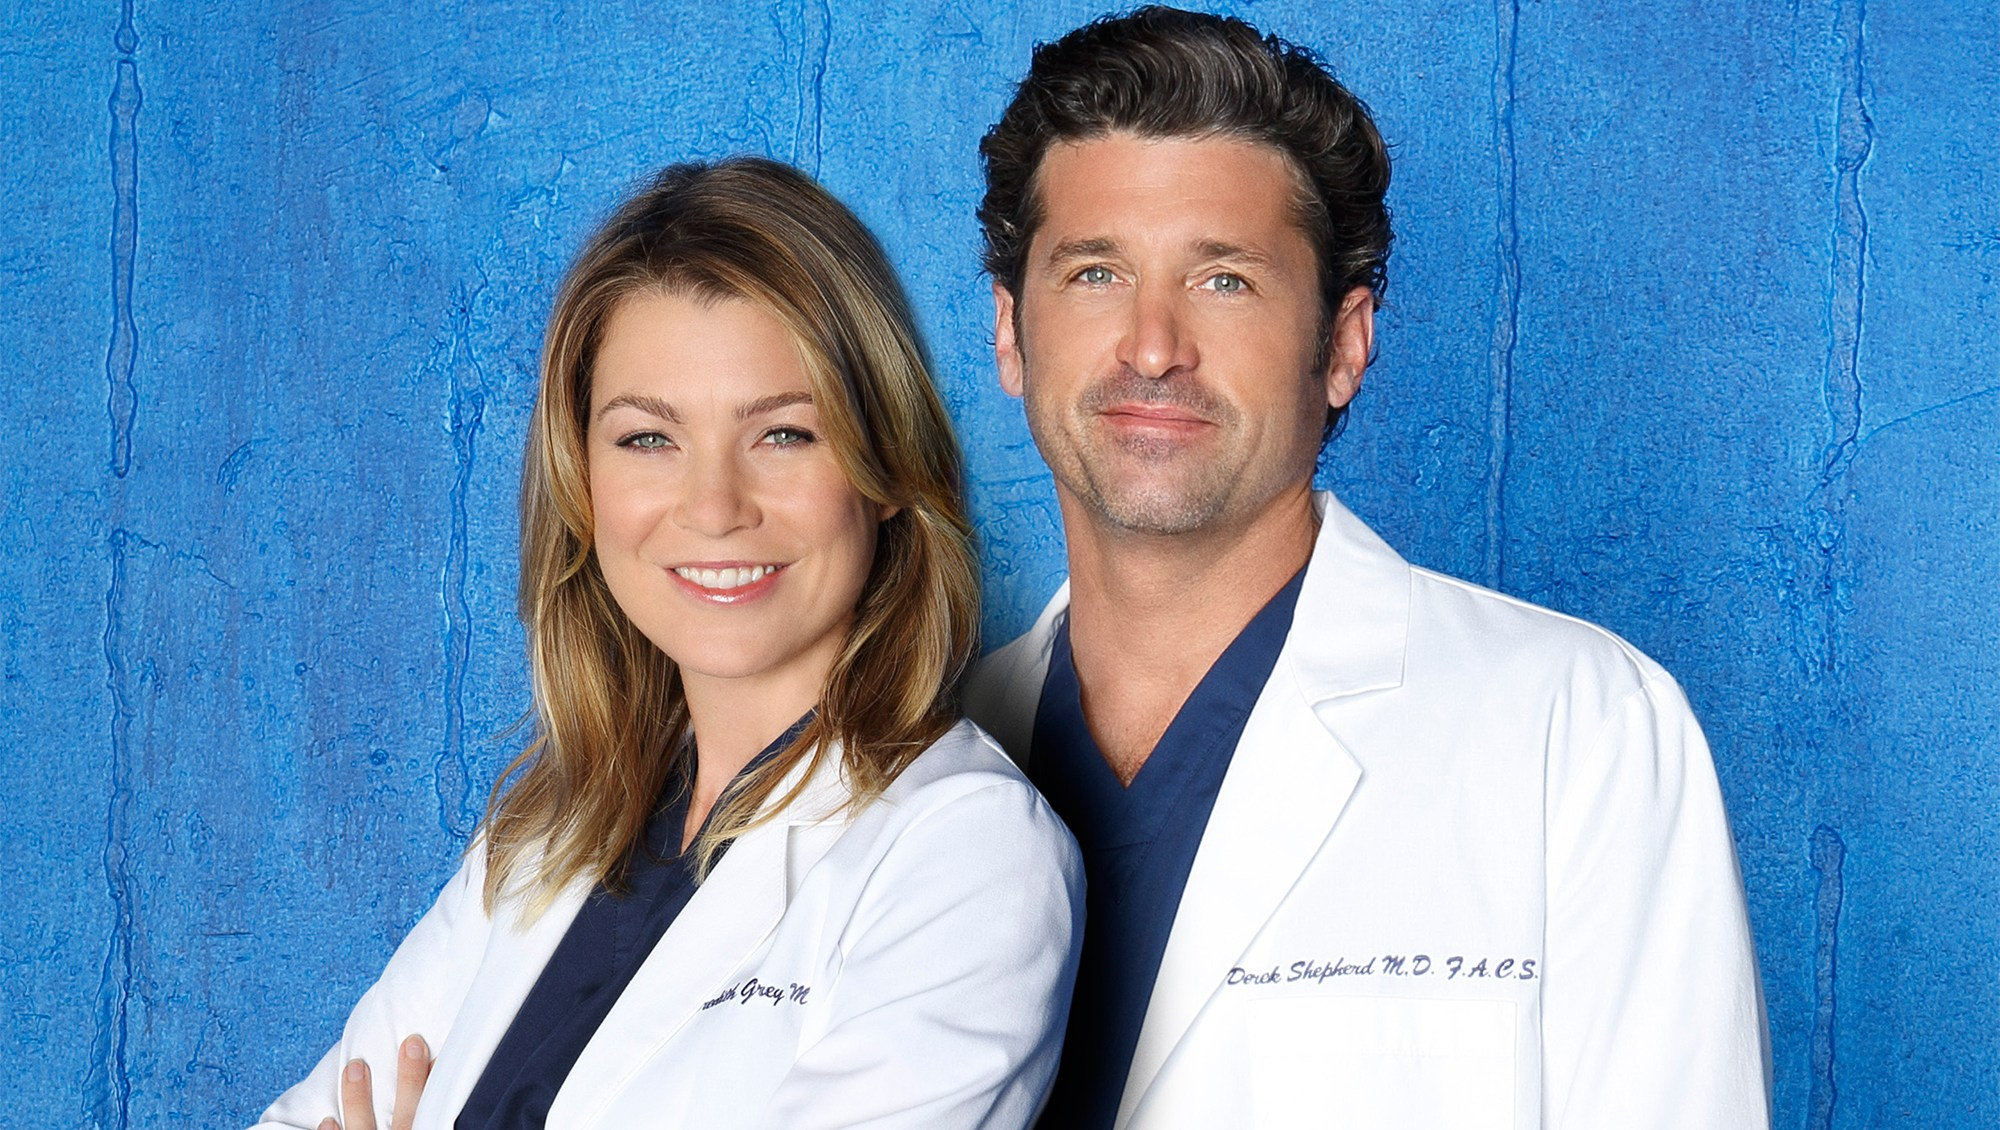 """Grey's Anatomy"" stars Ellen Pompeo as Dr. Meredith Grey and Patrick Dempsey as Dr. Derek Shepherd."